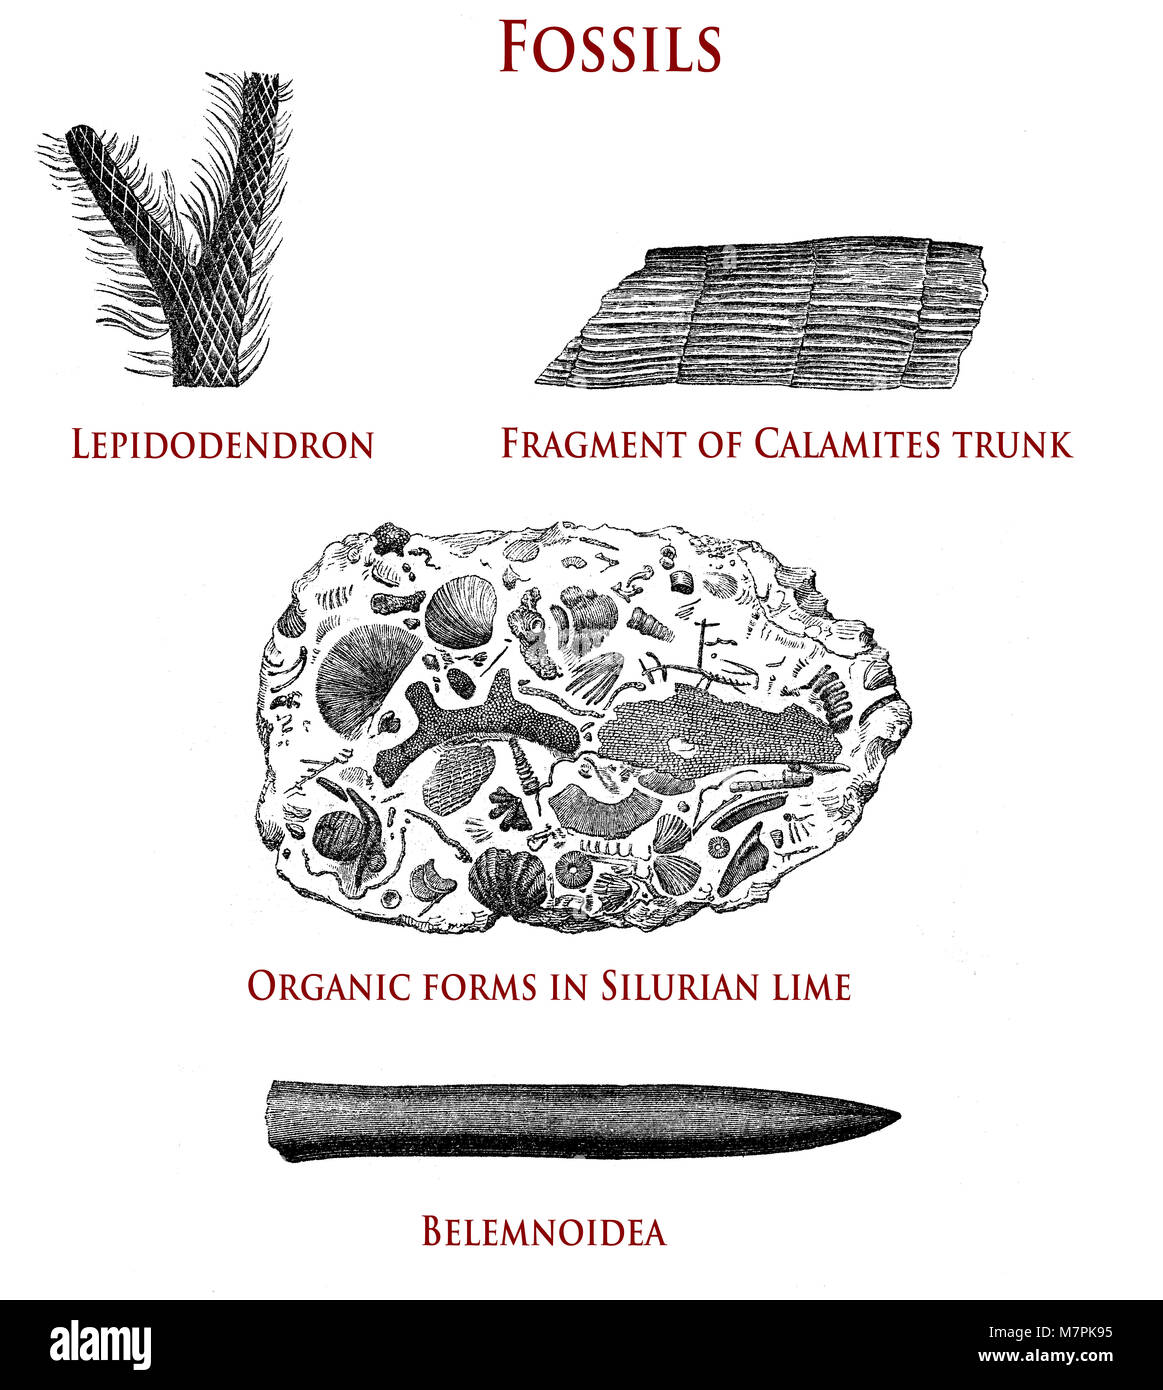 vintage illustration of fossils:  lepidodendron, calamites, organic forms in Silurian lime and belemnoidea Stock Photo